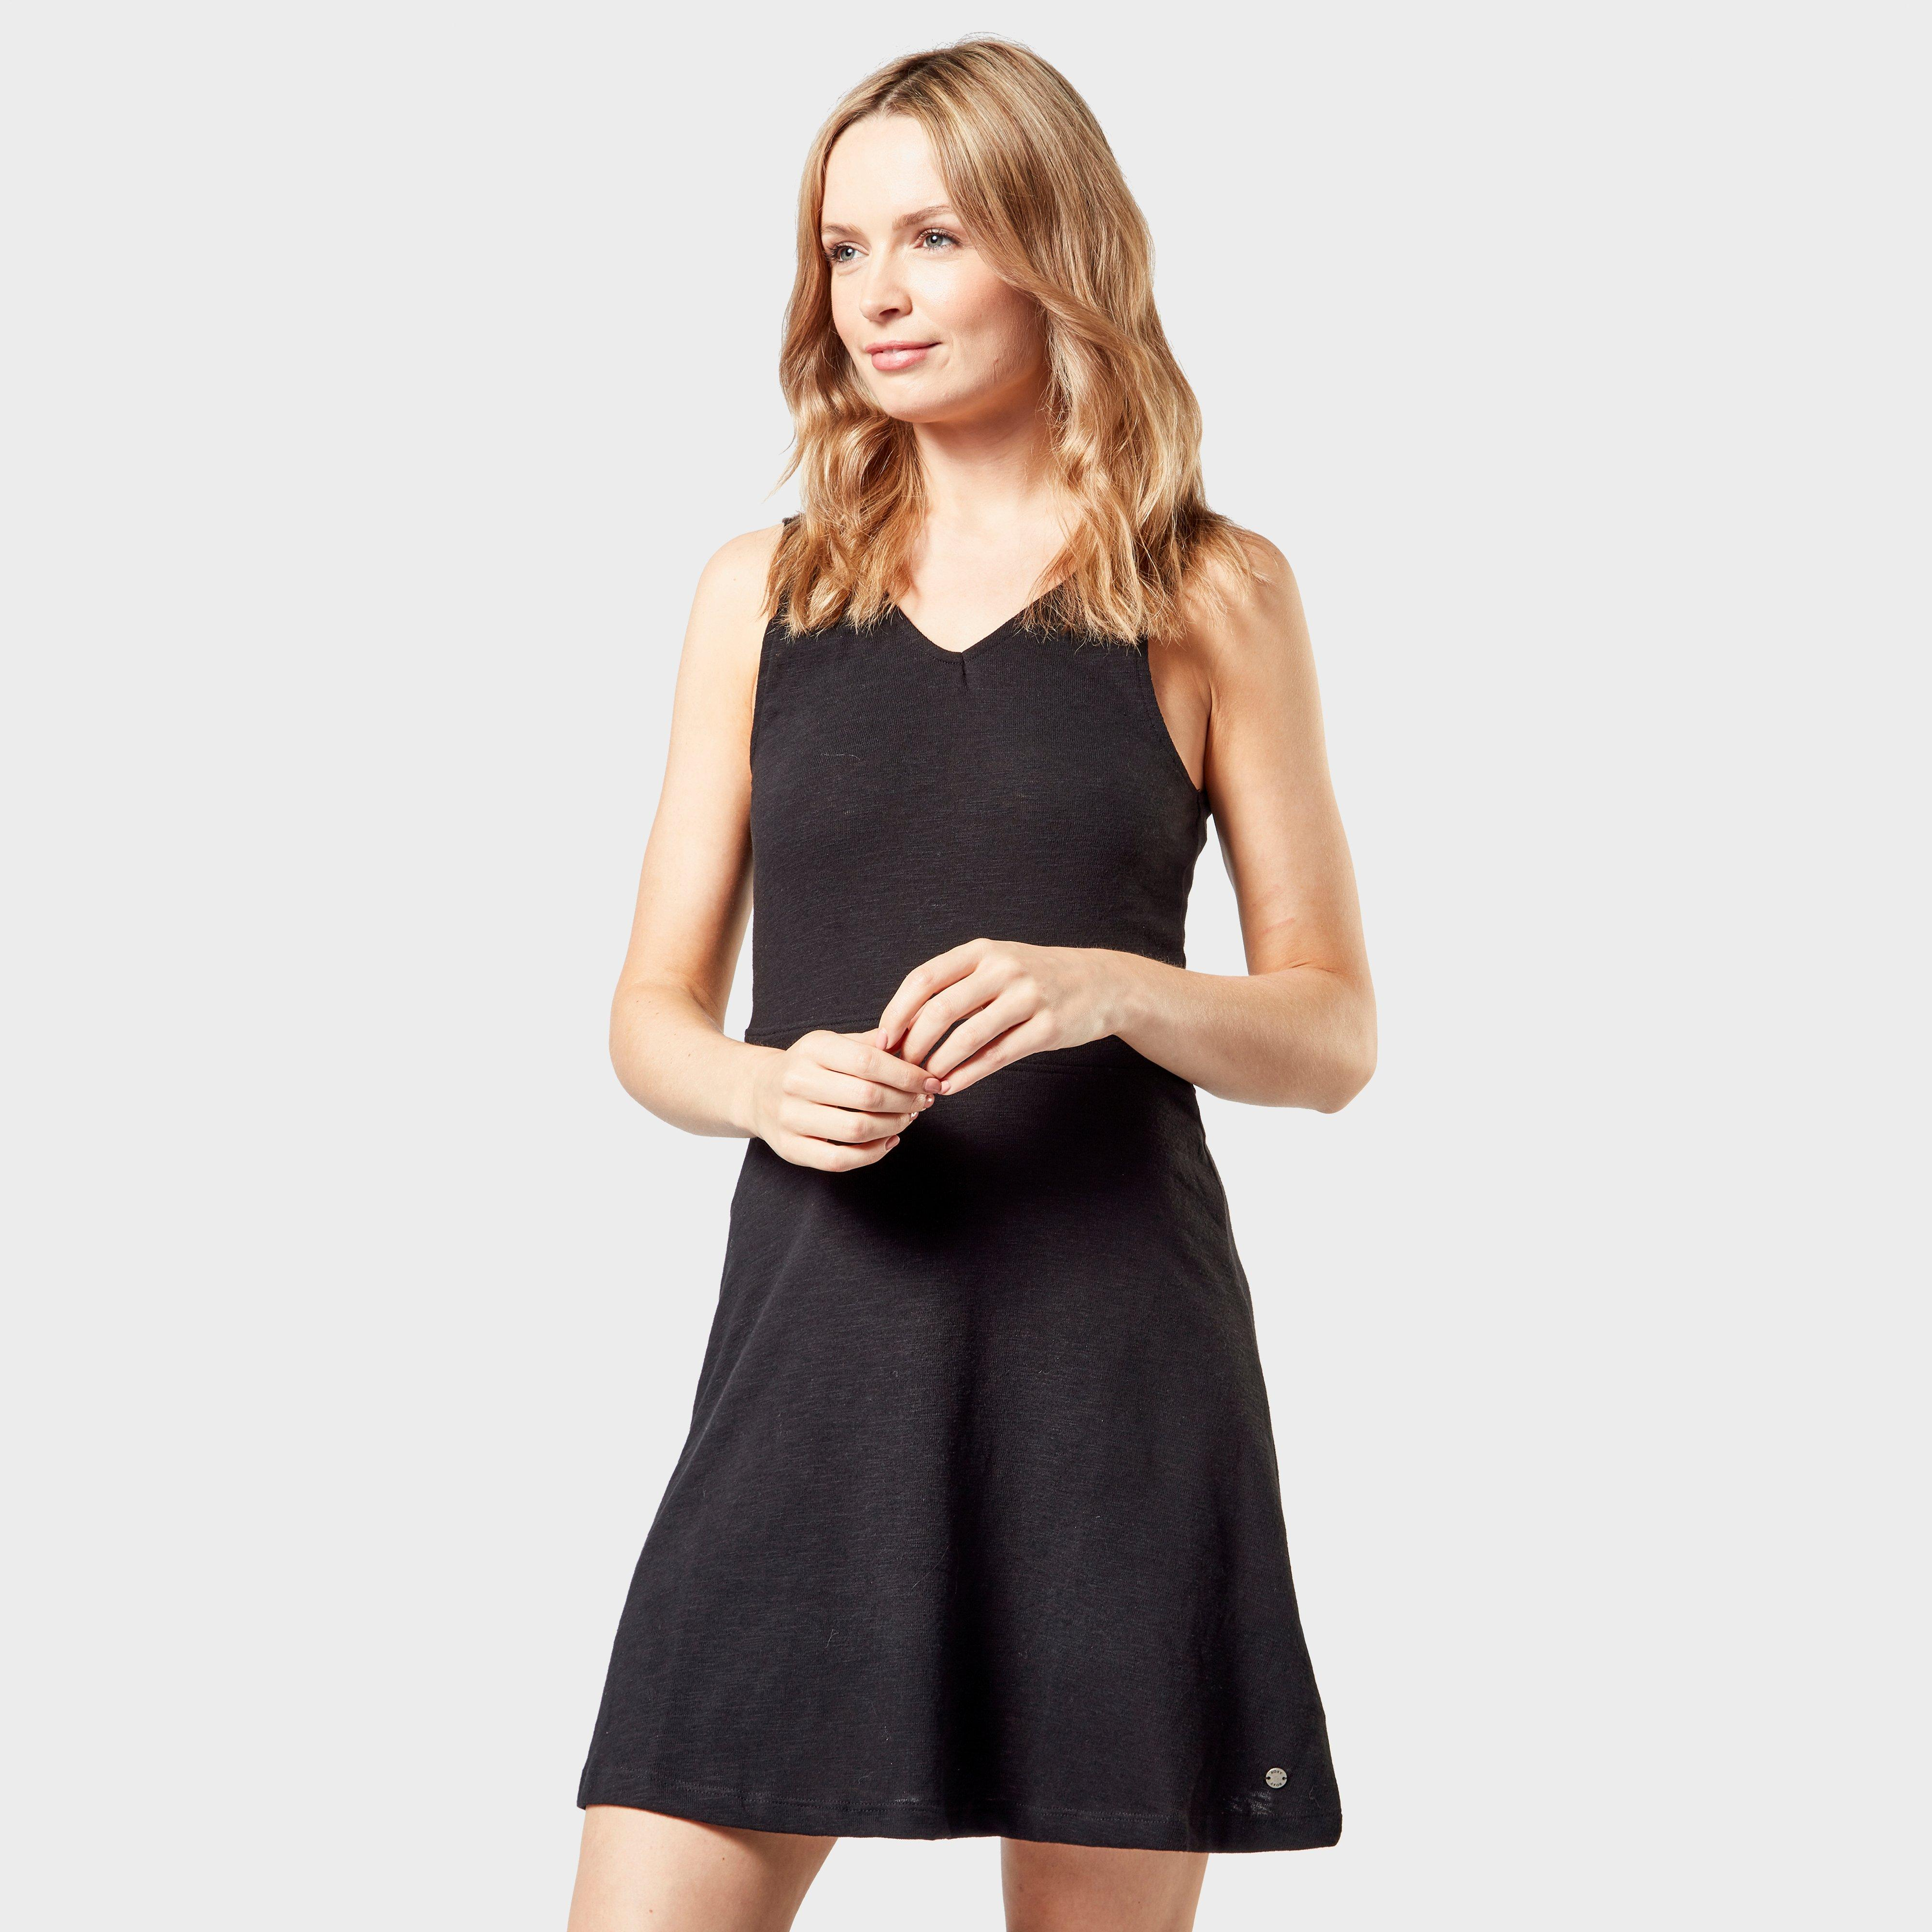 Roxy Roxy Womens Buying Time Dress - Black, Black